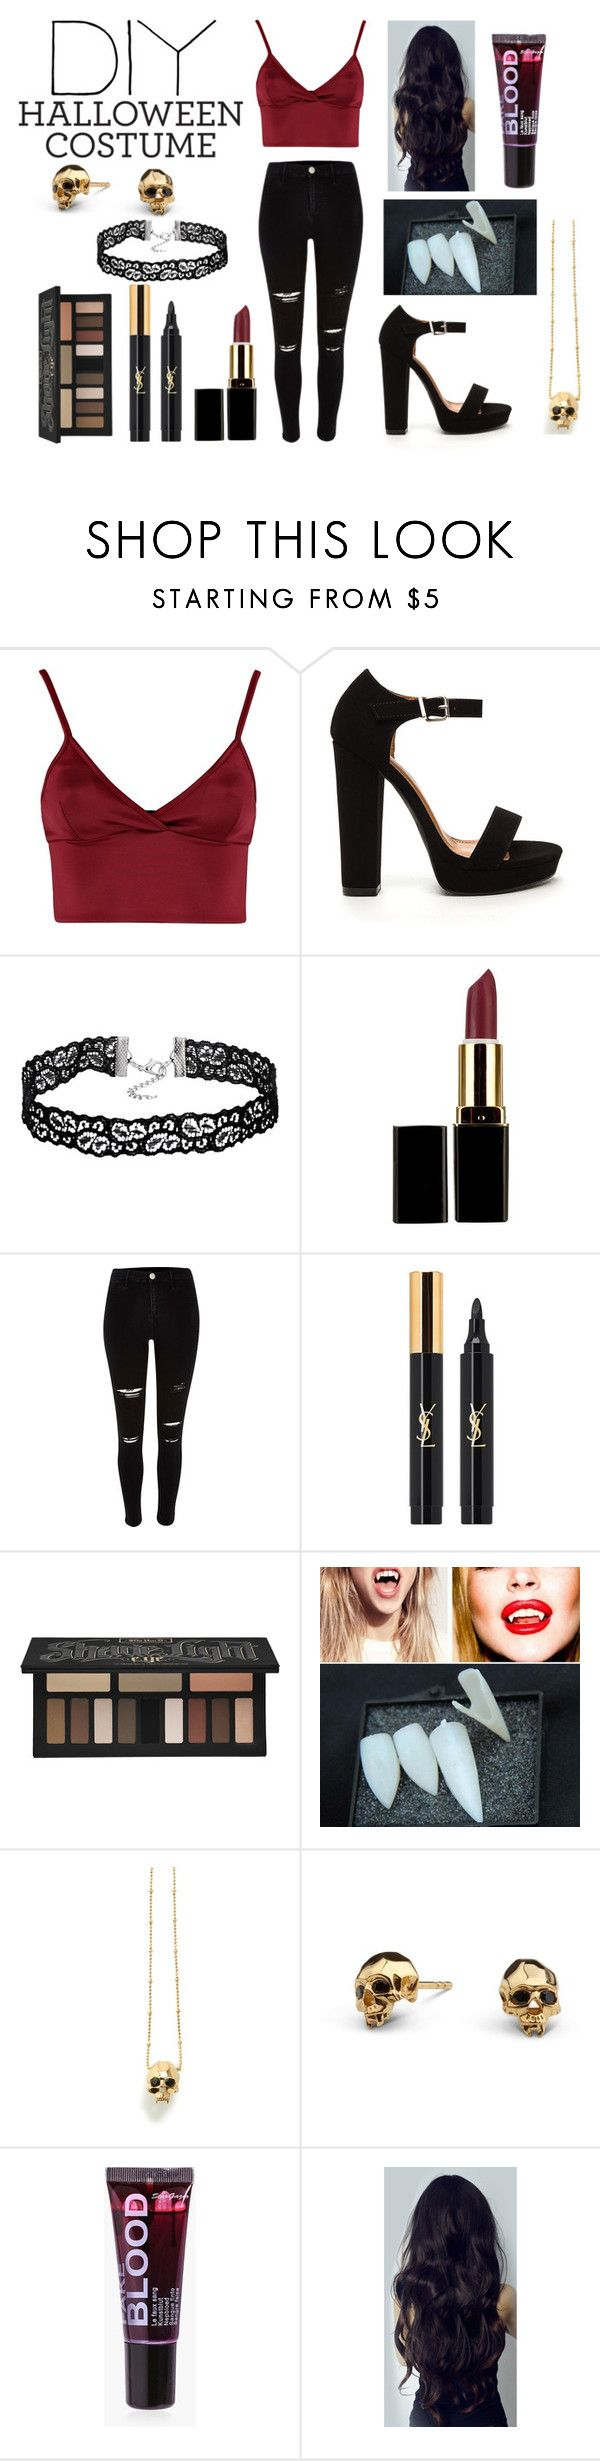 """DIY Vampire Halloween Costume"" by ariana-2102 ❤ liked on Polyvore featuring Lipsy, River Island, Yves Saint Laurent, Kat Von D, Kasun, Boohoo, halloweencostume and DIYHalloween"